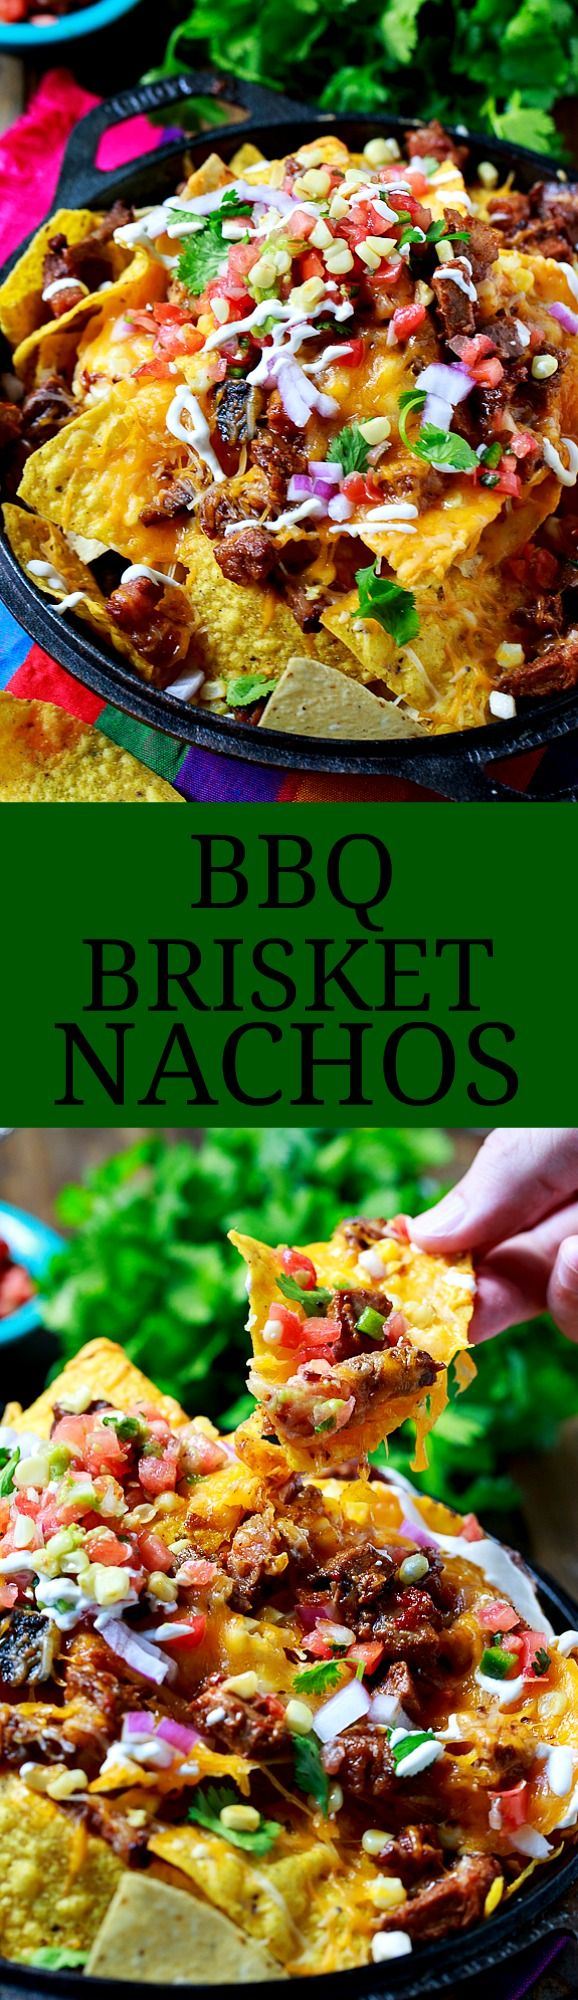 BBQ Brisket Nachos- perfect for game day and a great way to use up leftover brisket!